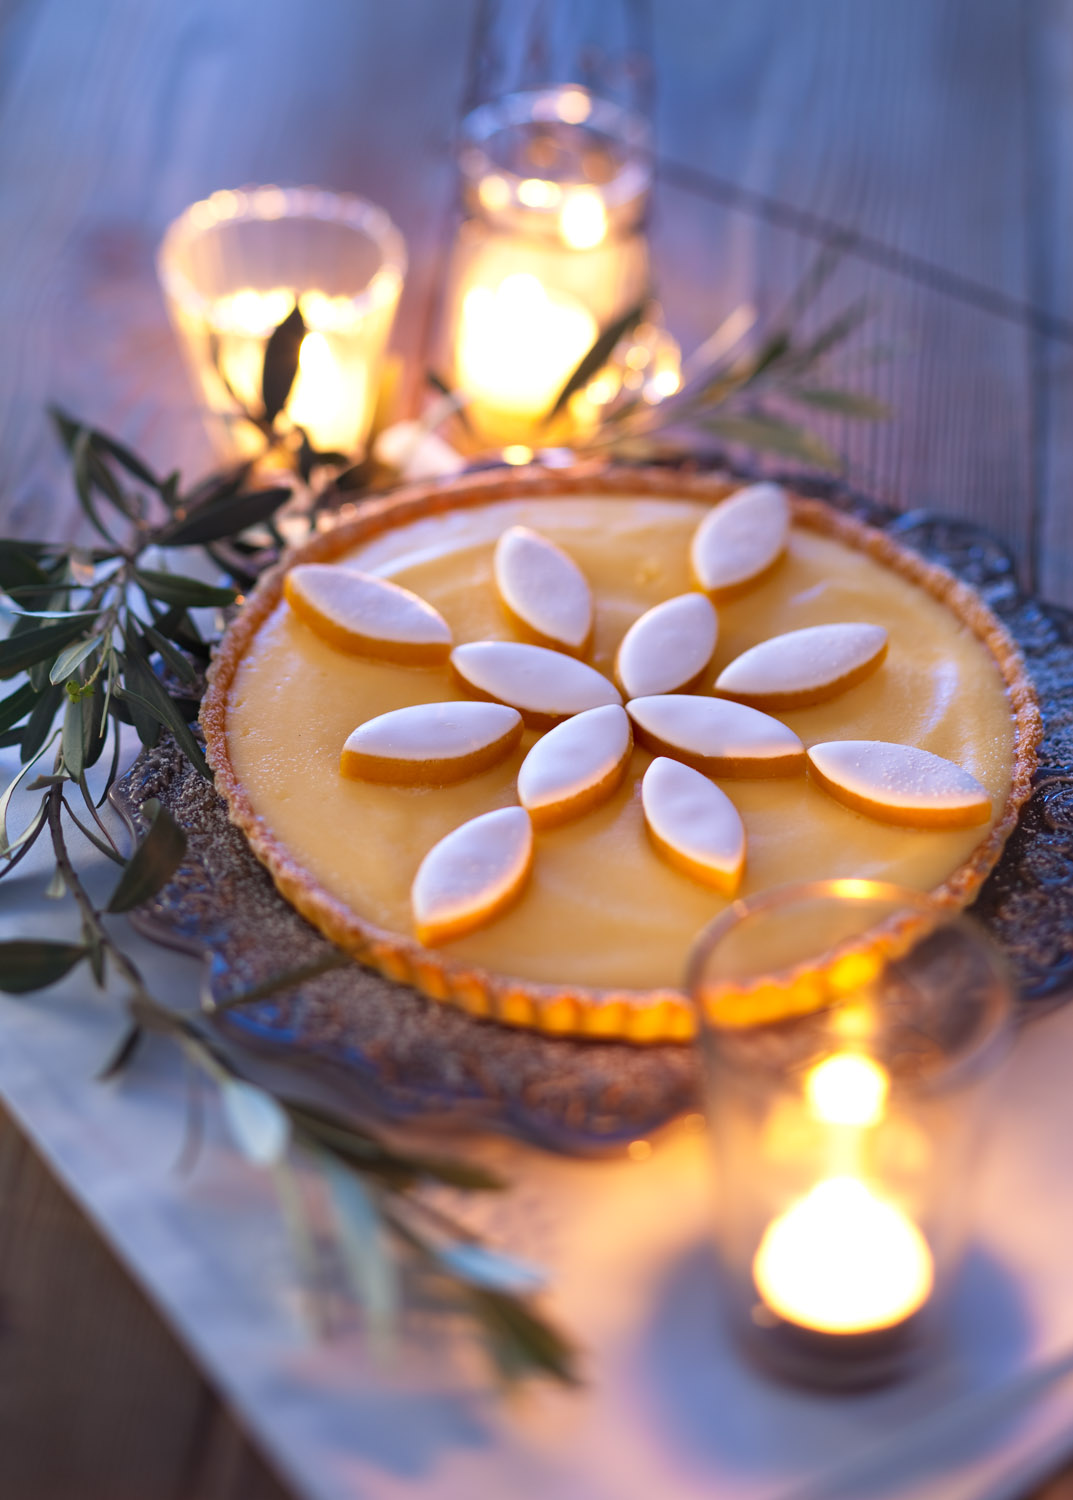 tarte citron calissons